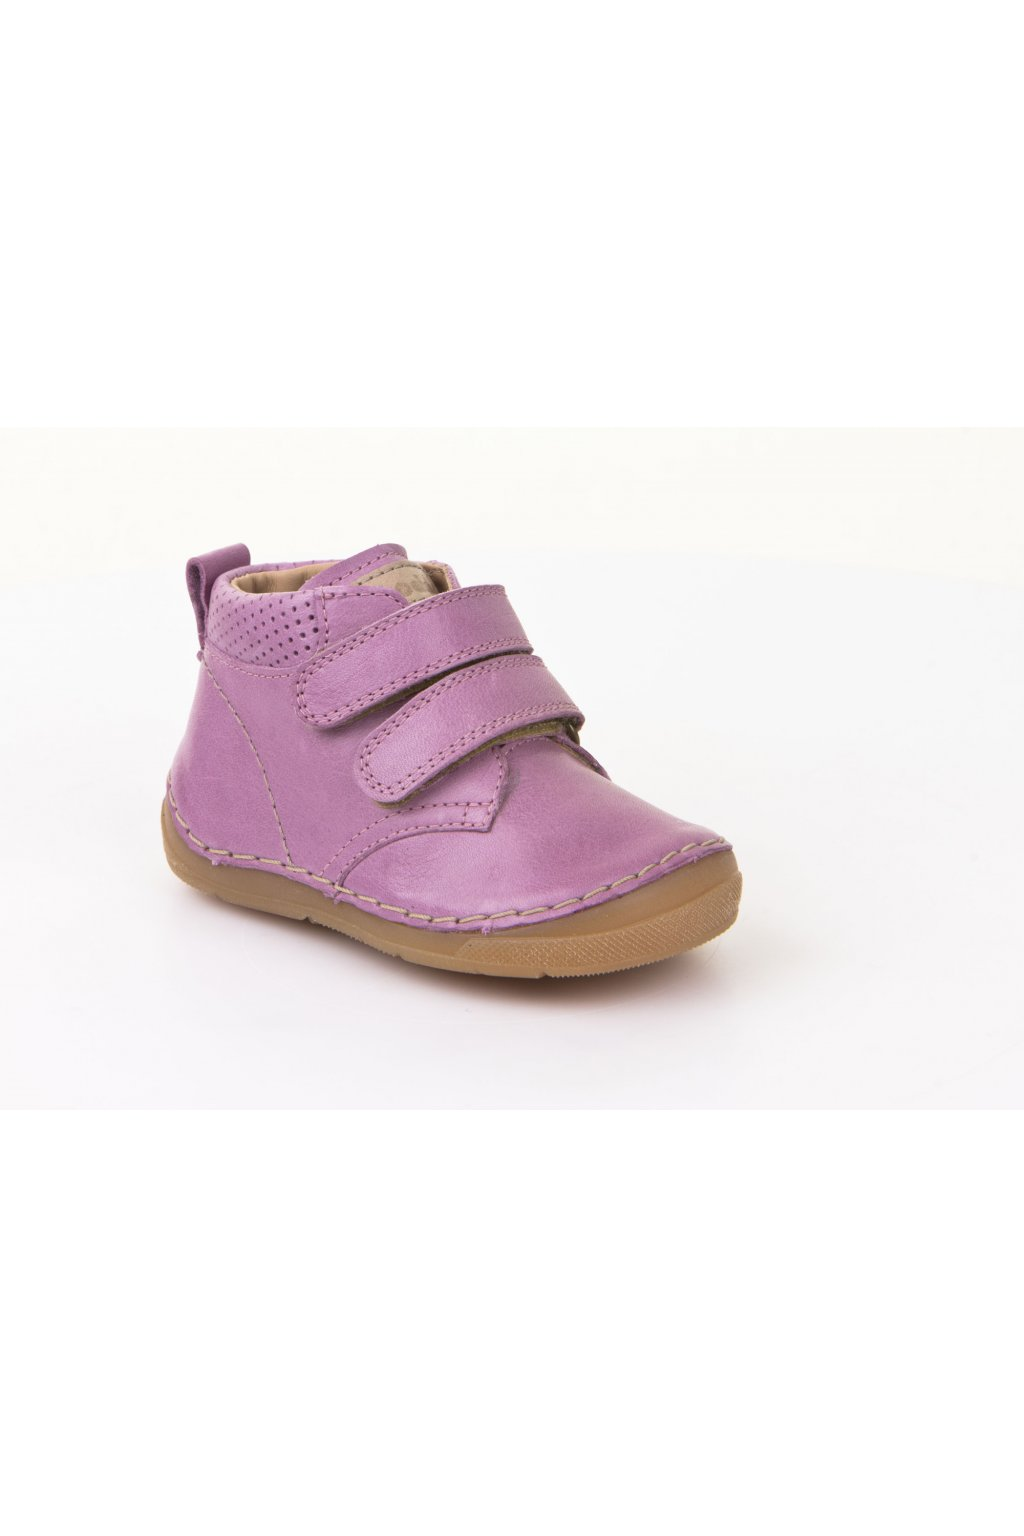 Froddo shoes Lilac